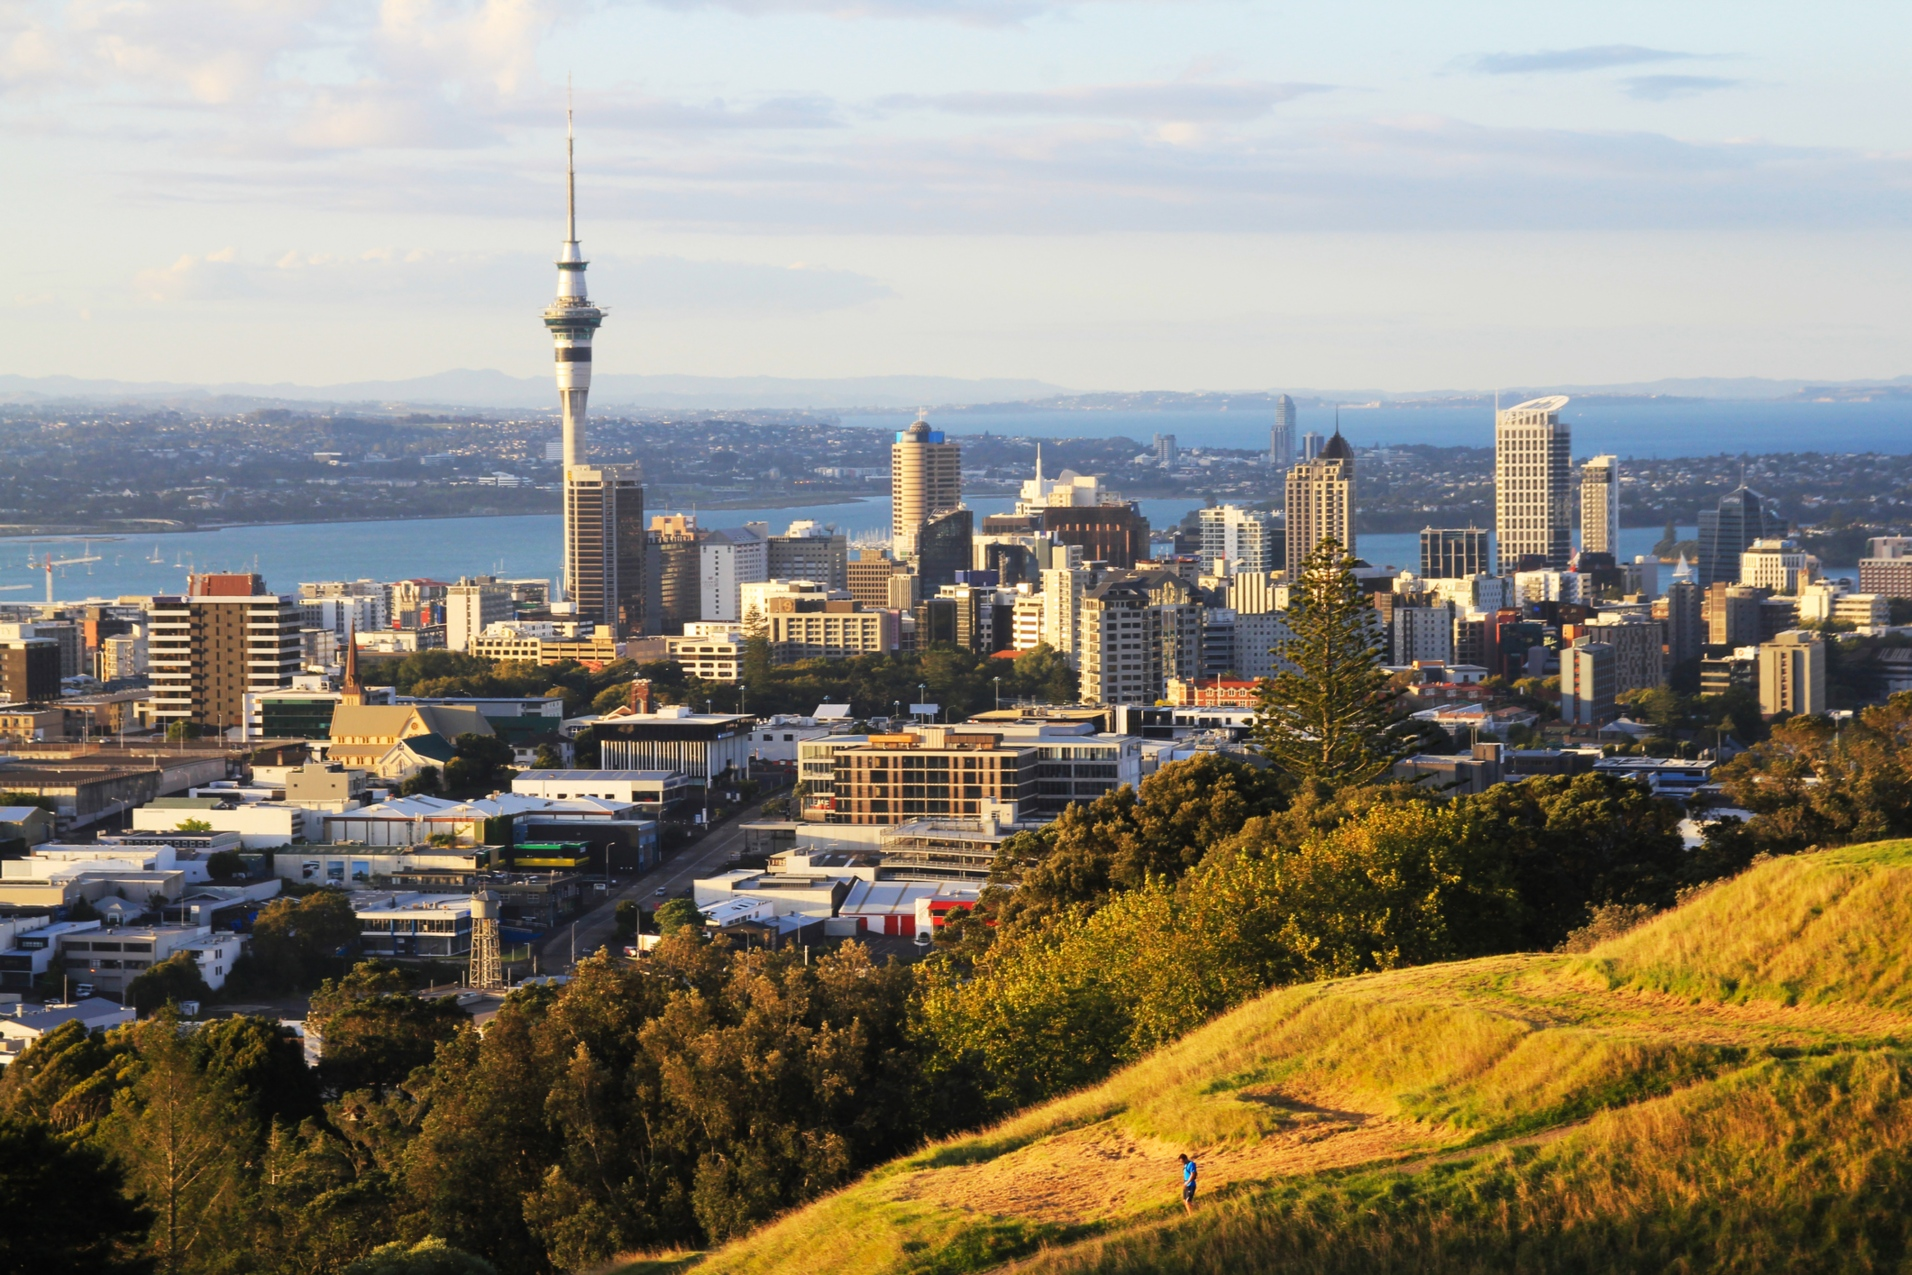 The Auckland acquisition marks the first move into New Zealand's market for Logos as the logistics specialist expands its Asia Pacific footprint.